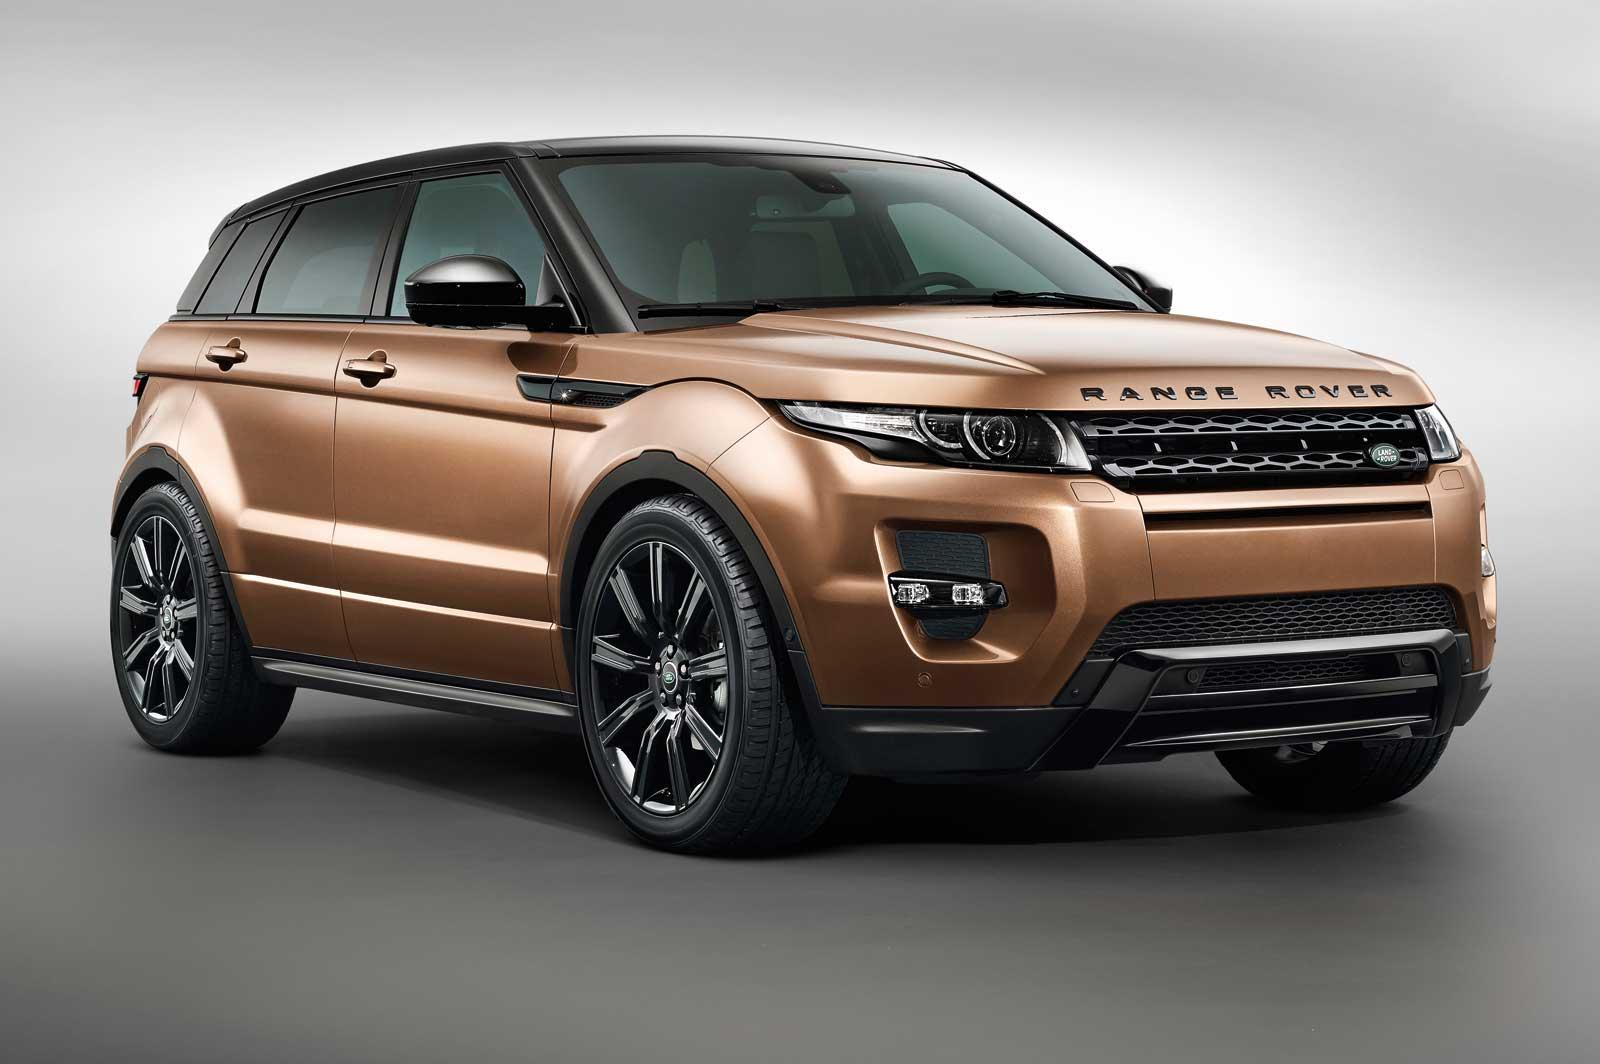 Land Rover Evoque_e project announced | Electric Vehicle News